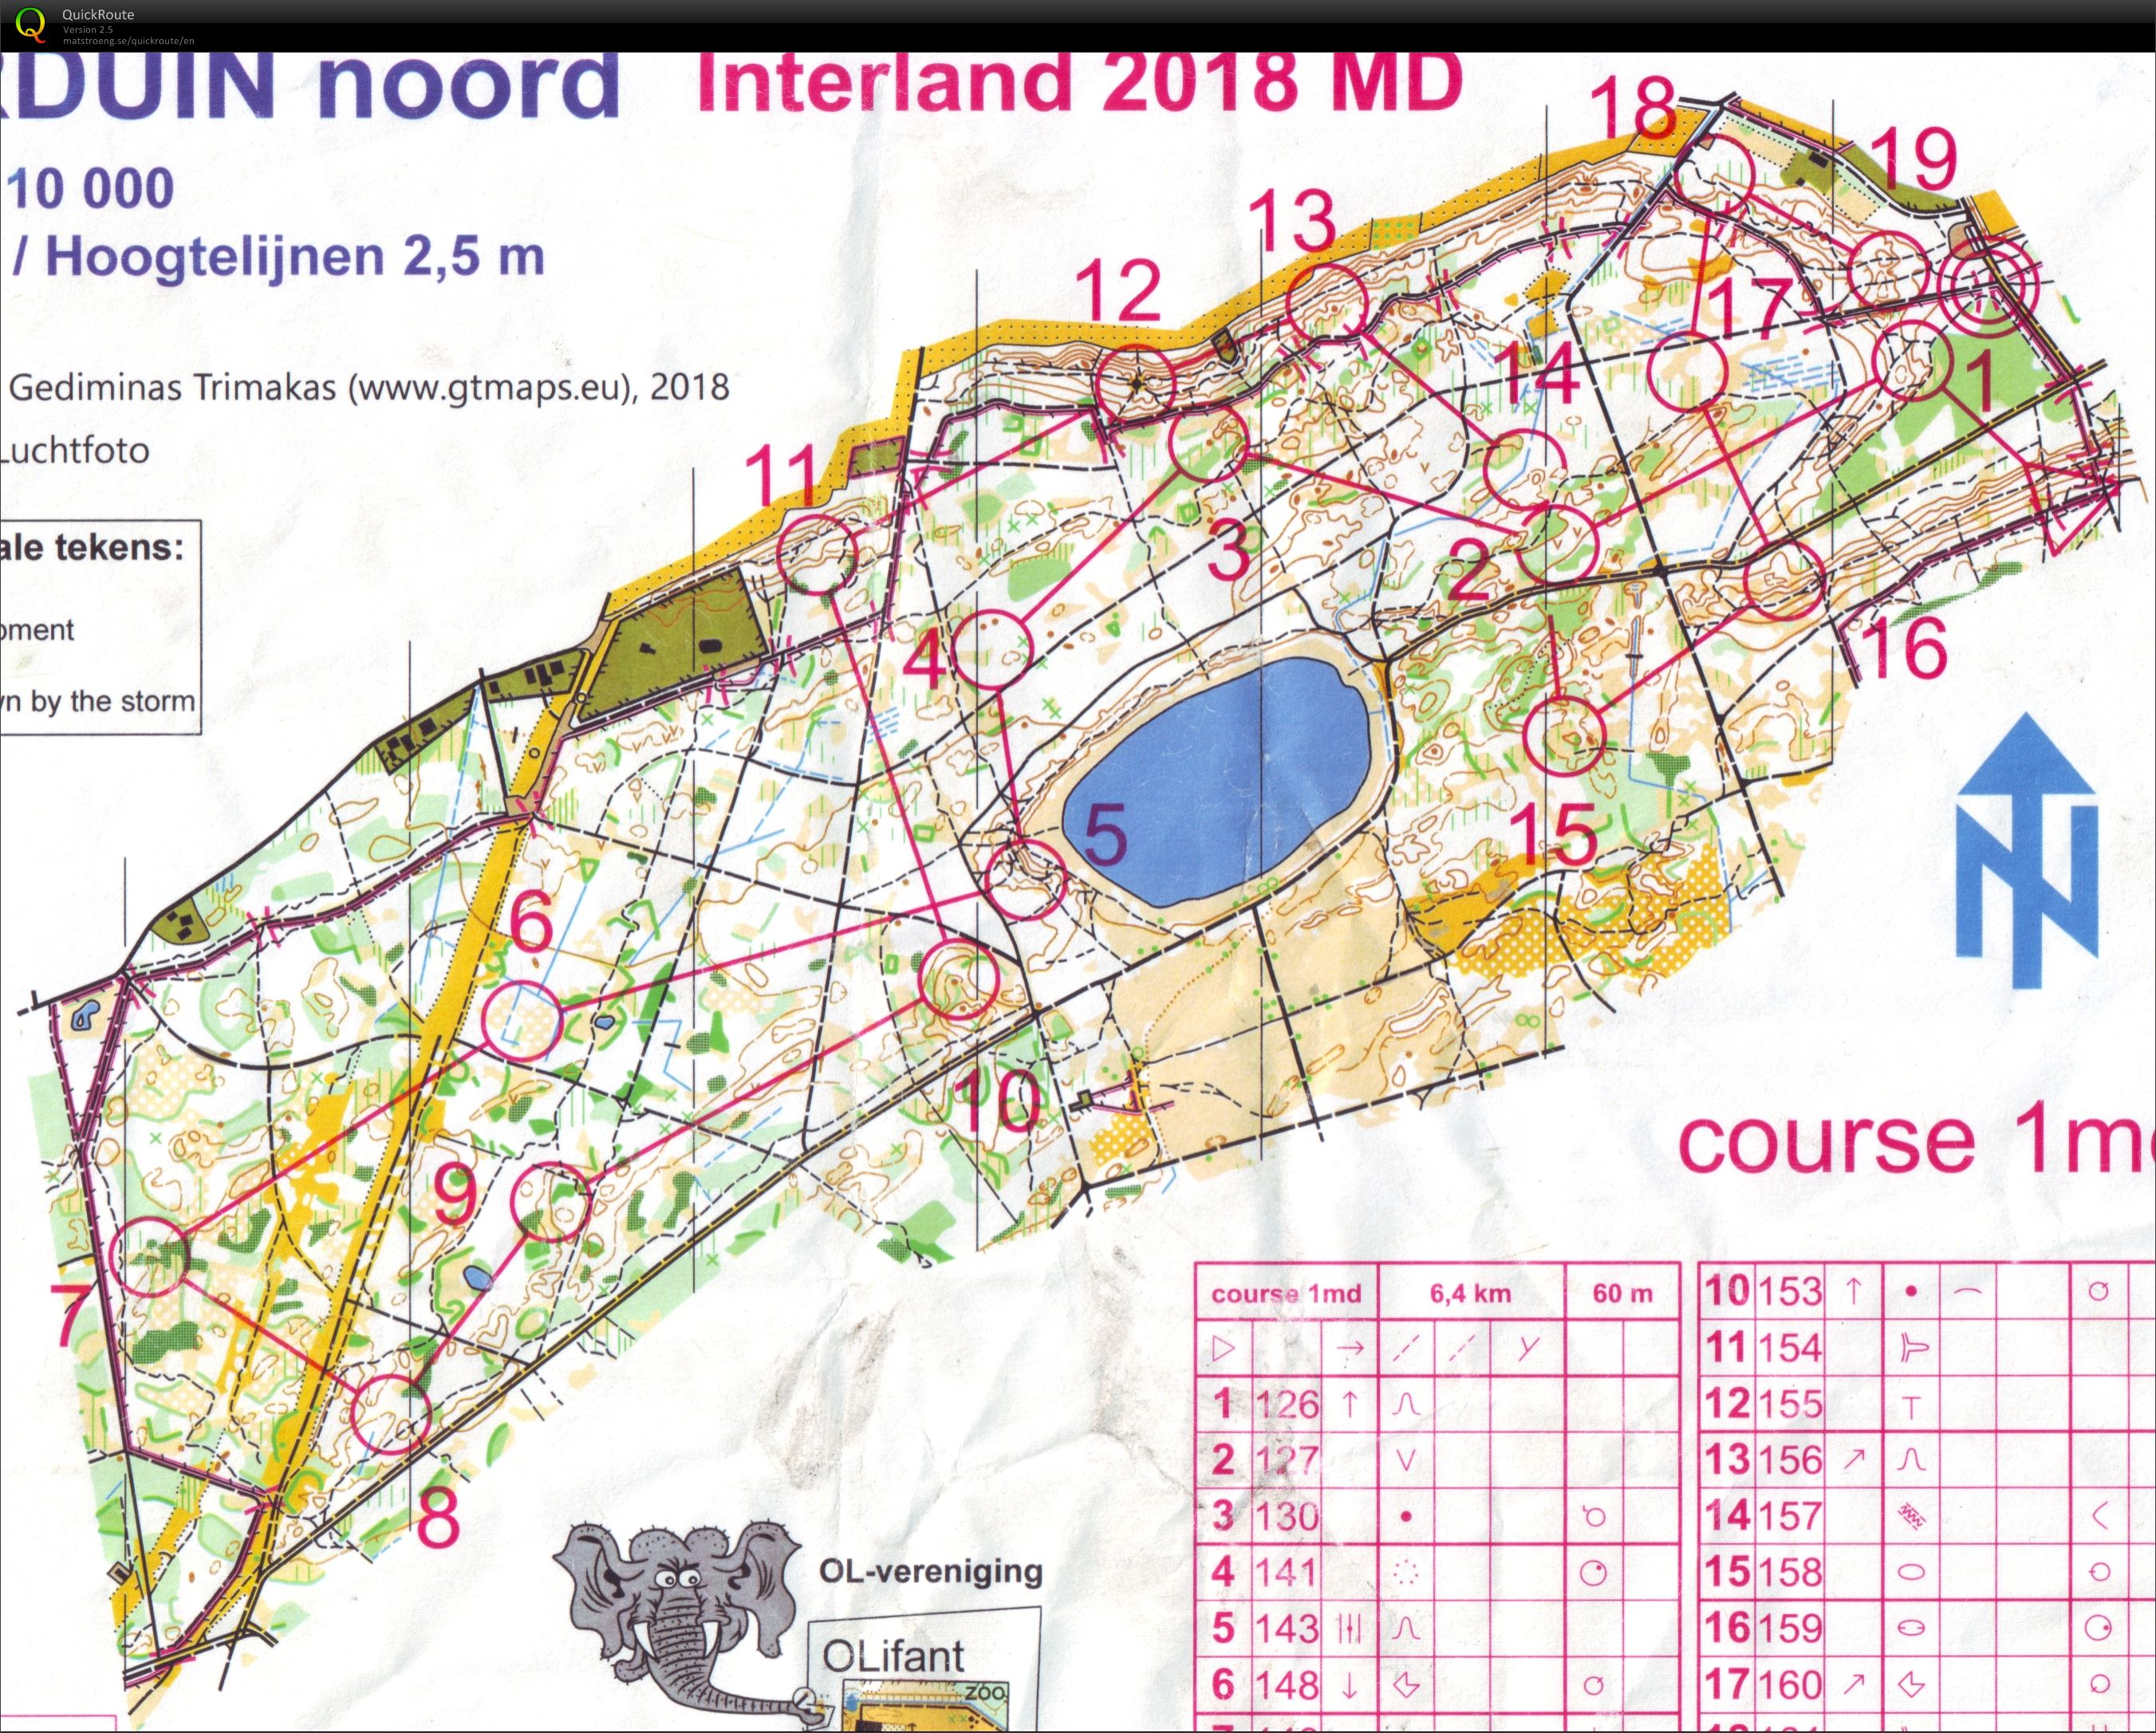 Interland 2018, race 2: MD (10/03/2018)